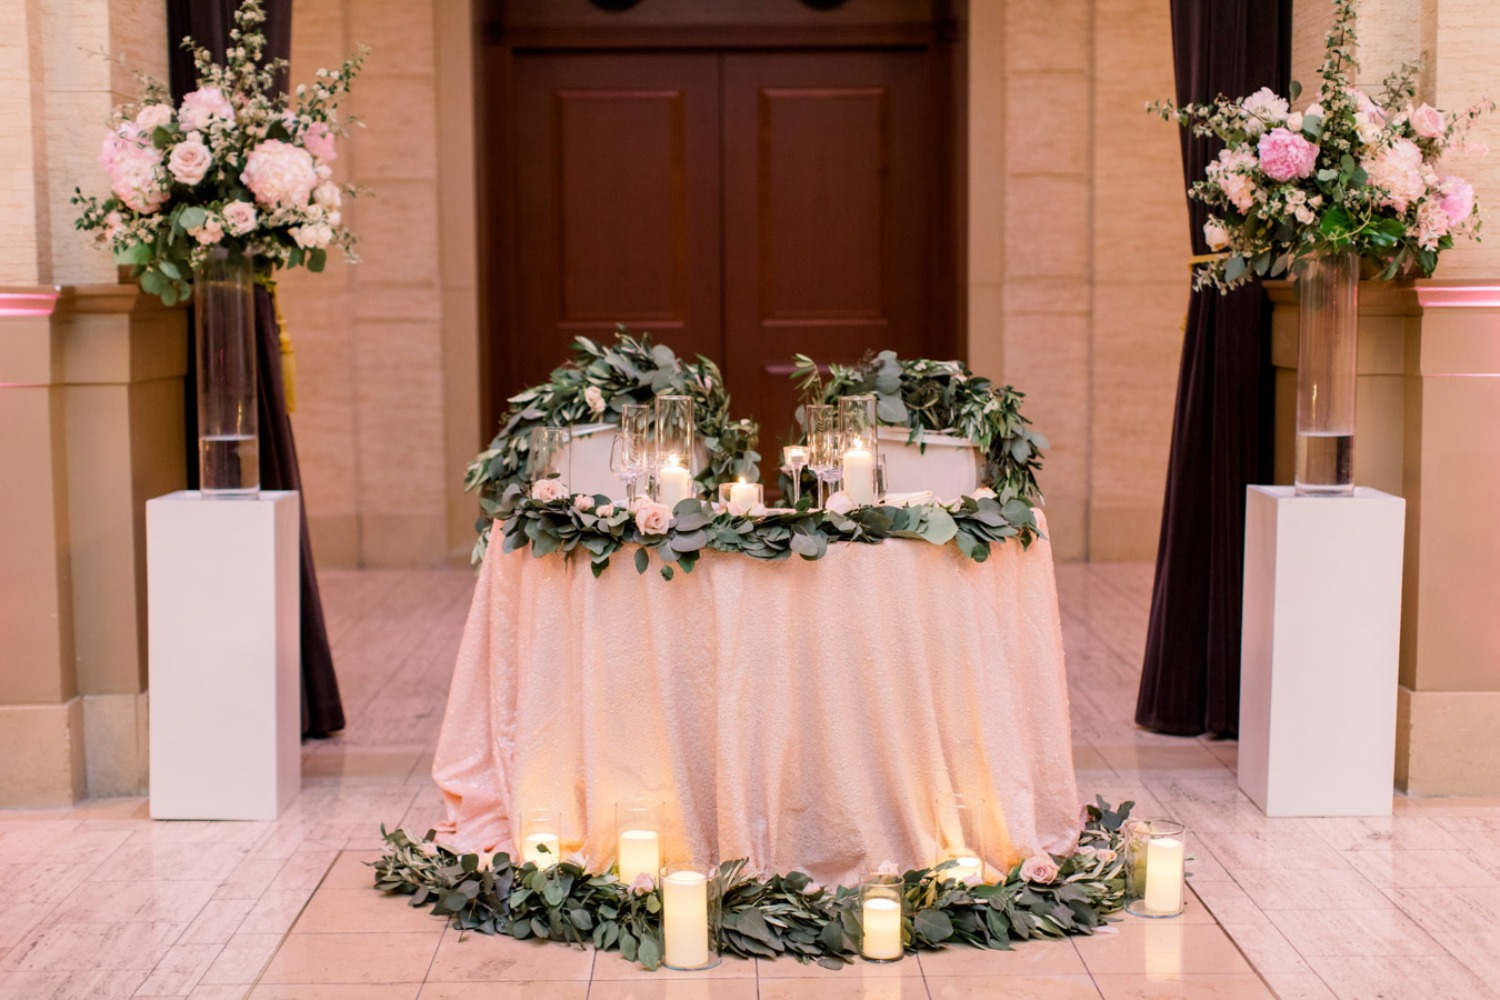 Sweetheart table with candles